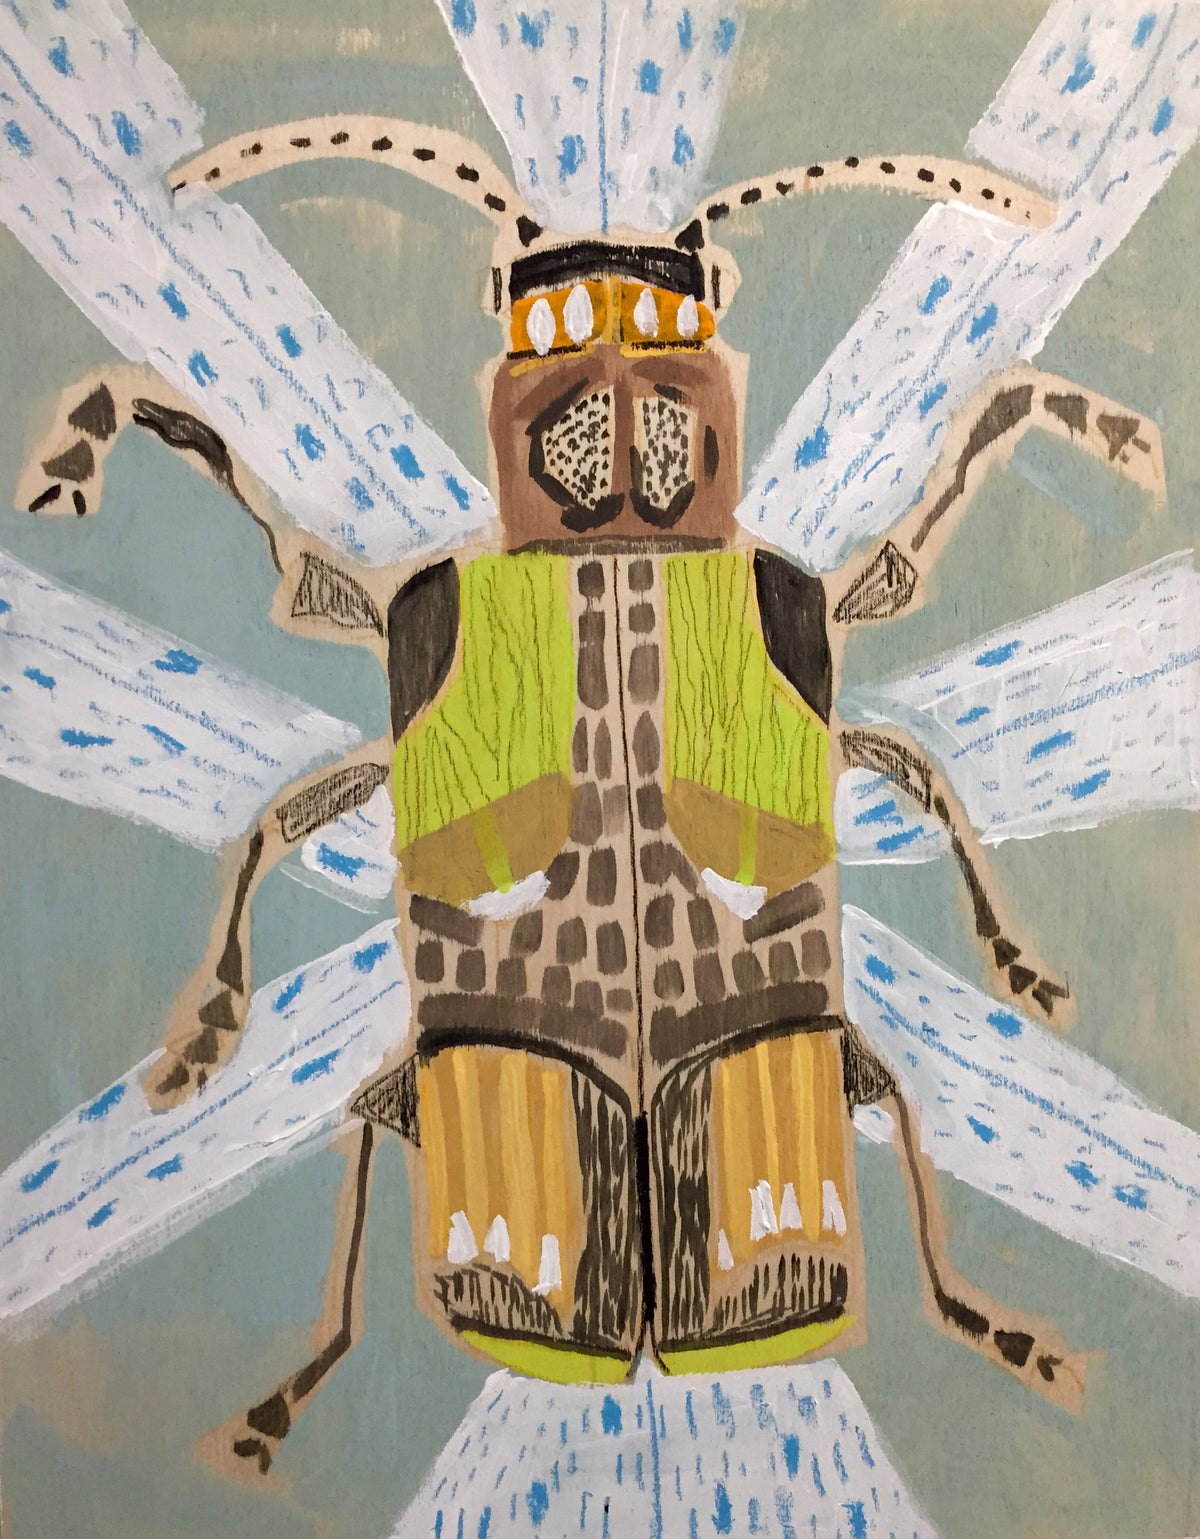 18X14 - SAMUEL THE BEETLE